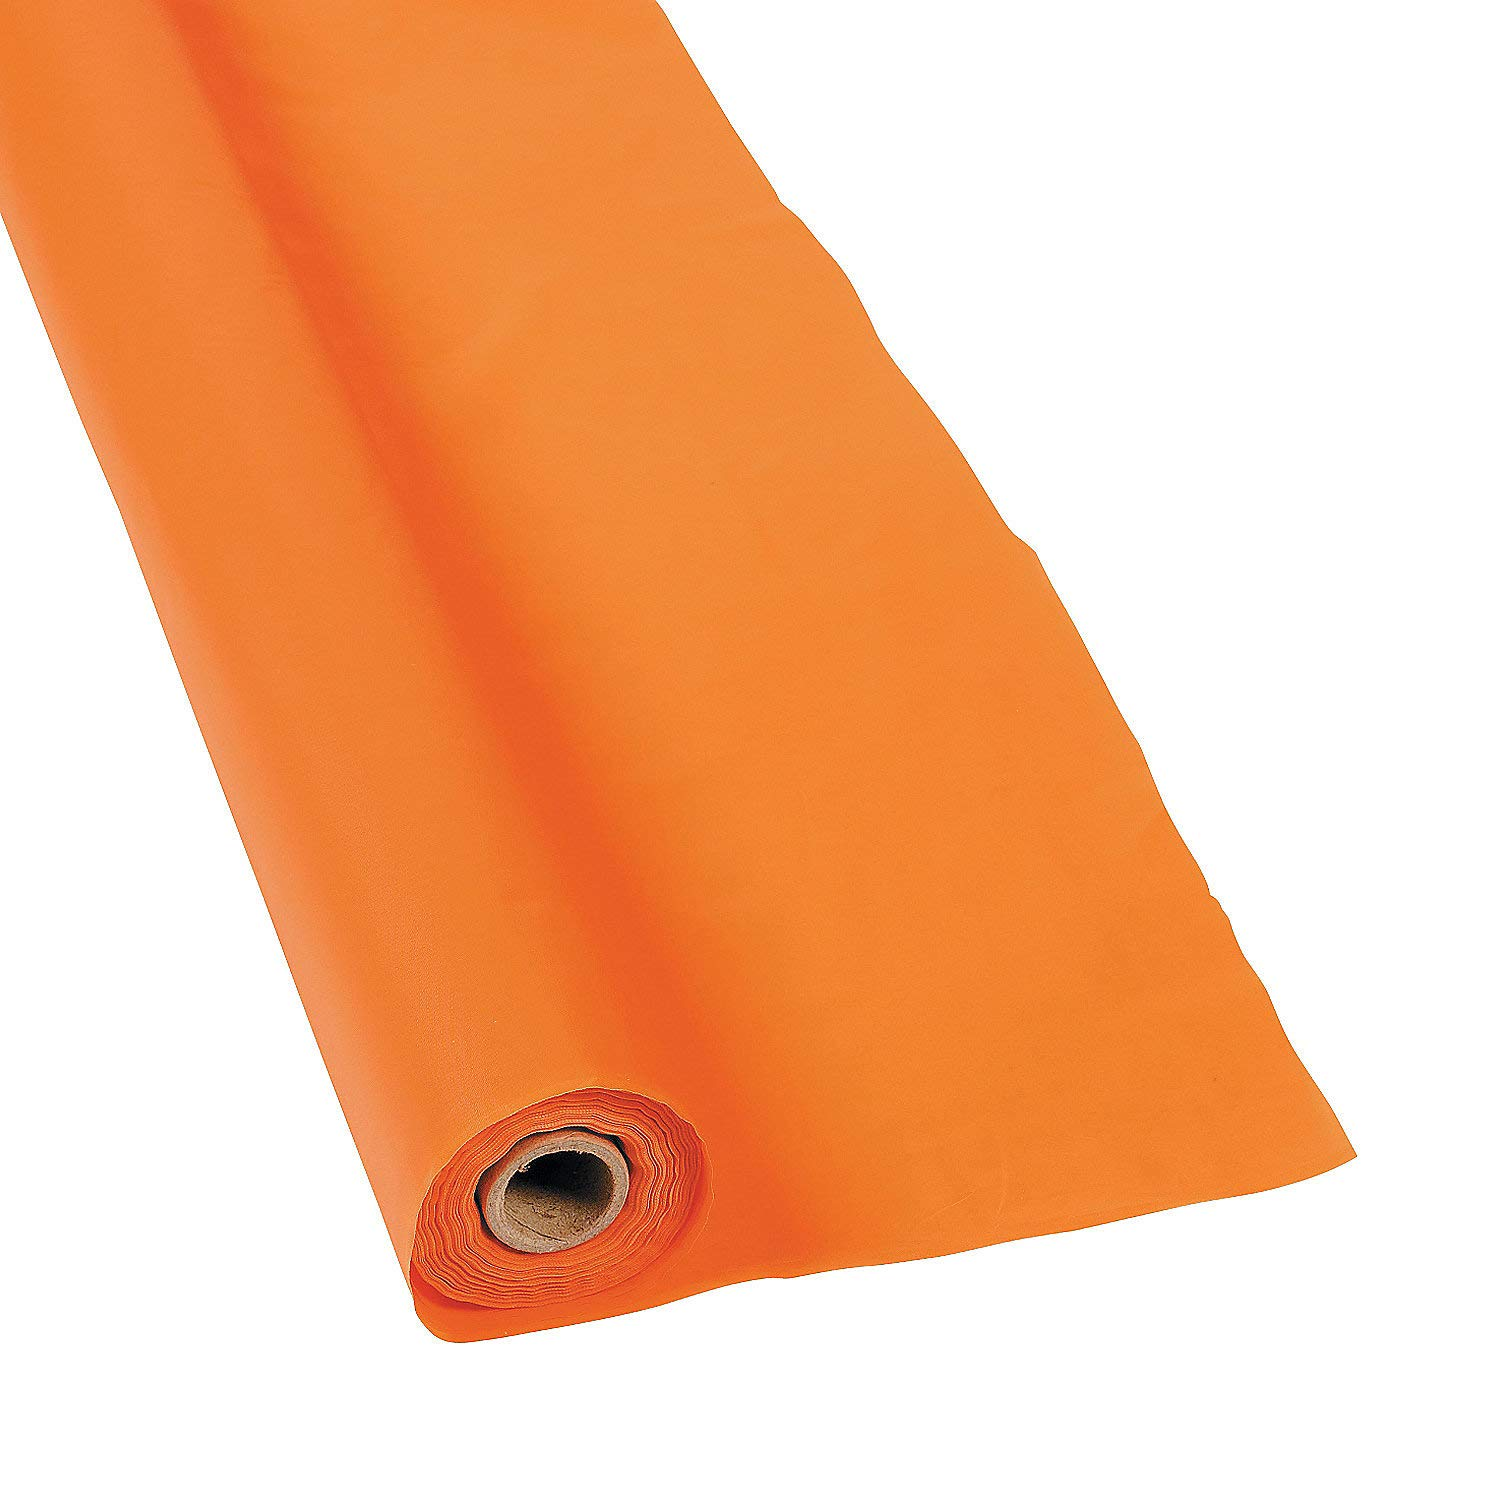 Disposable Orange Tablecloth Roll (40 x 100') - Party Supplies and Decoration by Fun Express